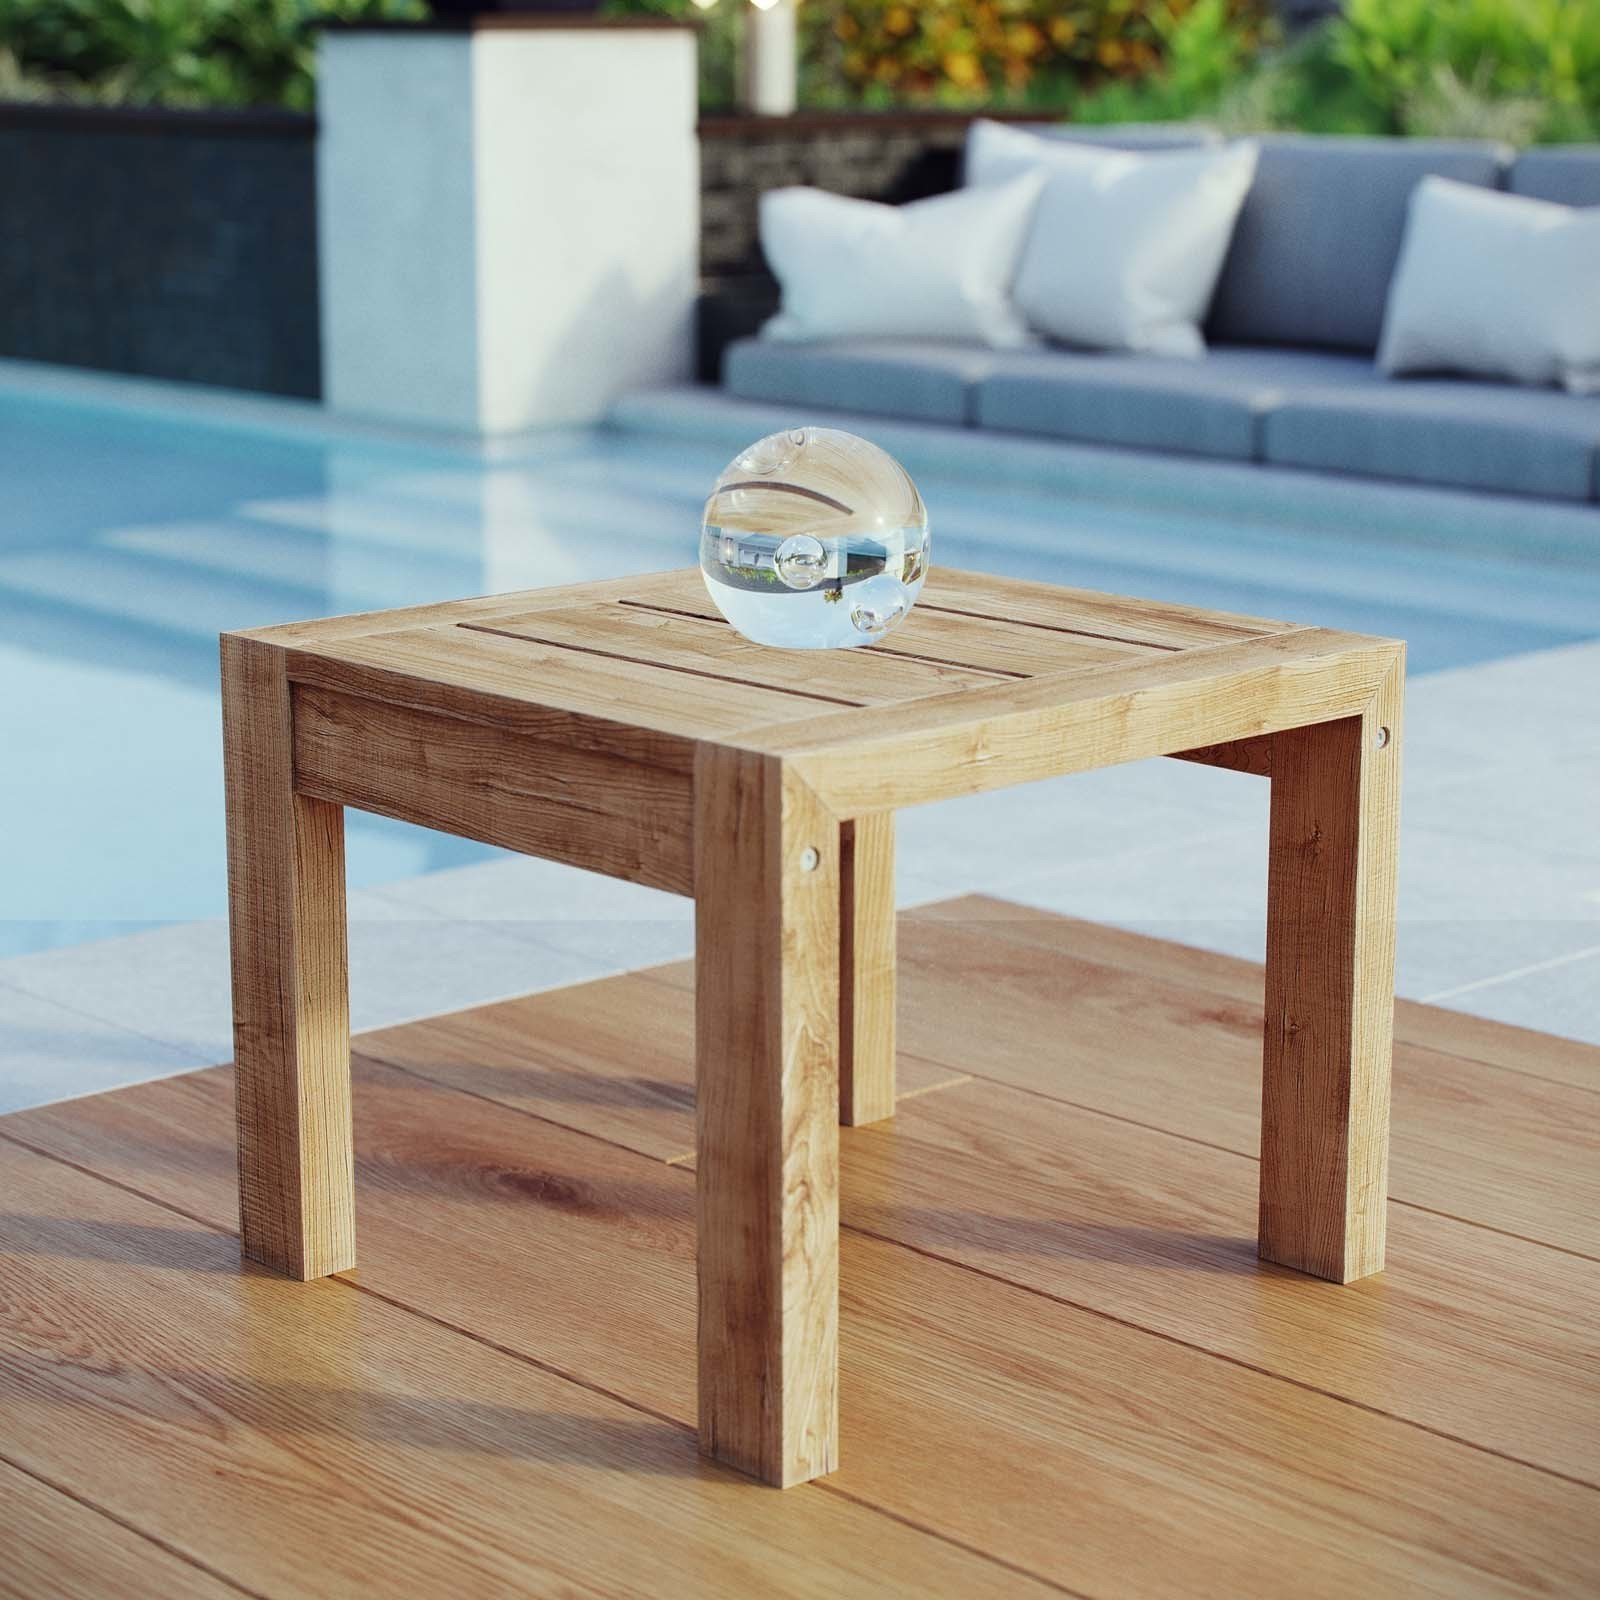 upland outdoor patio wood side table free shipping orders small garden and chairs trestle base replica sofa tall glass lamps tiffany piece setting bunnings marble bedside target